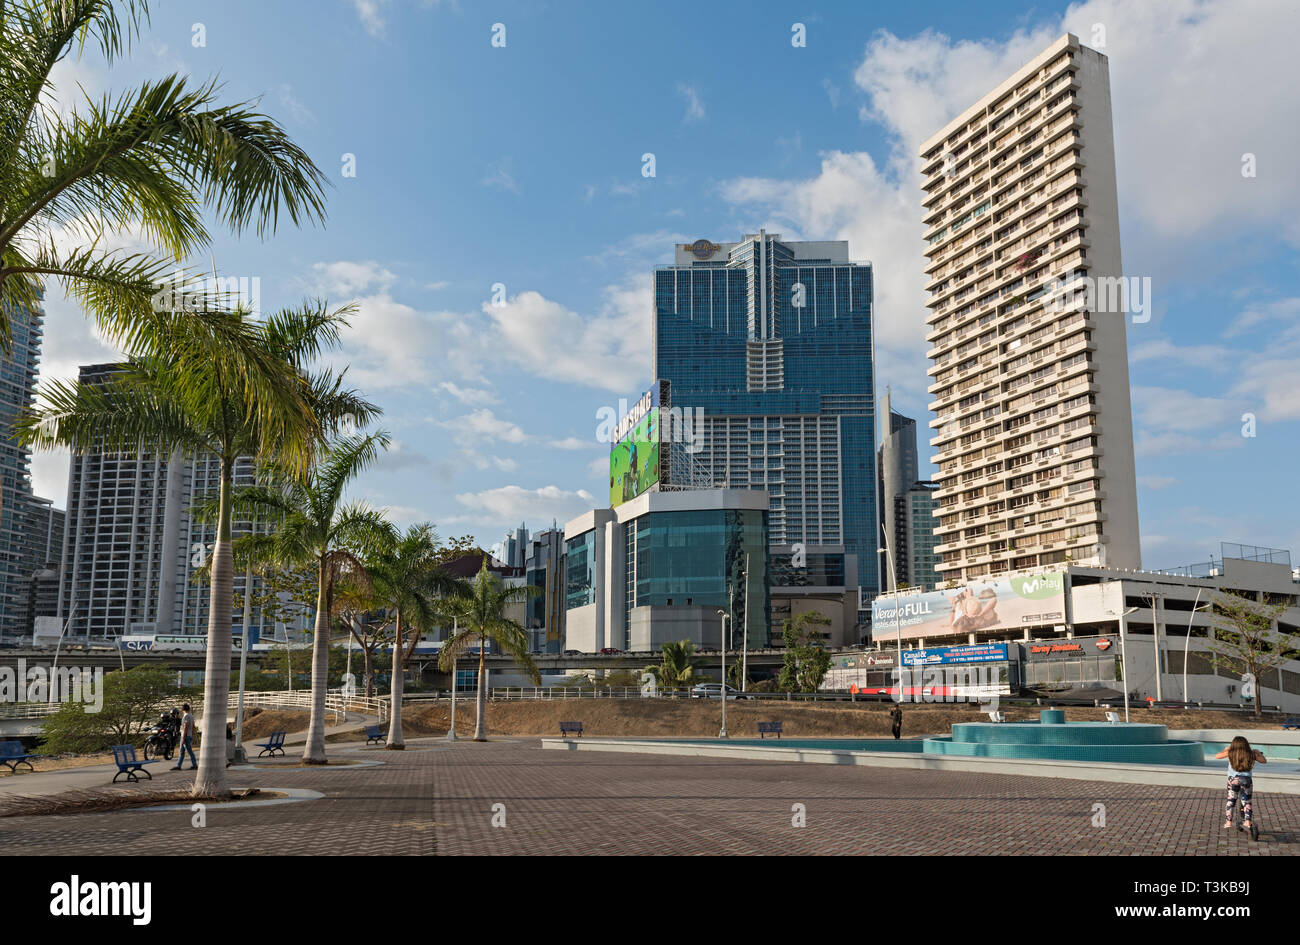 democracy plaza in front of the skyline in panama city - Stock Image